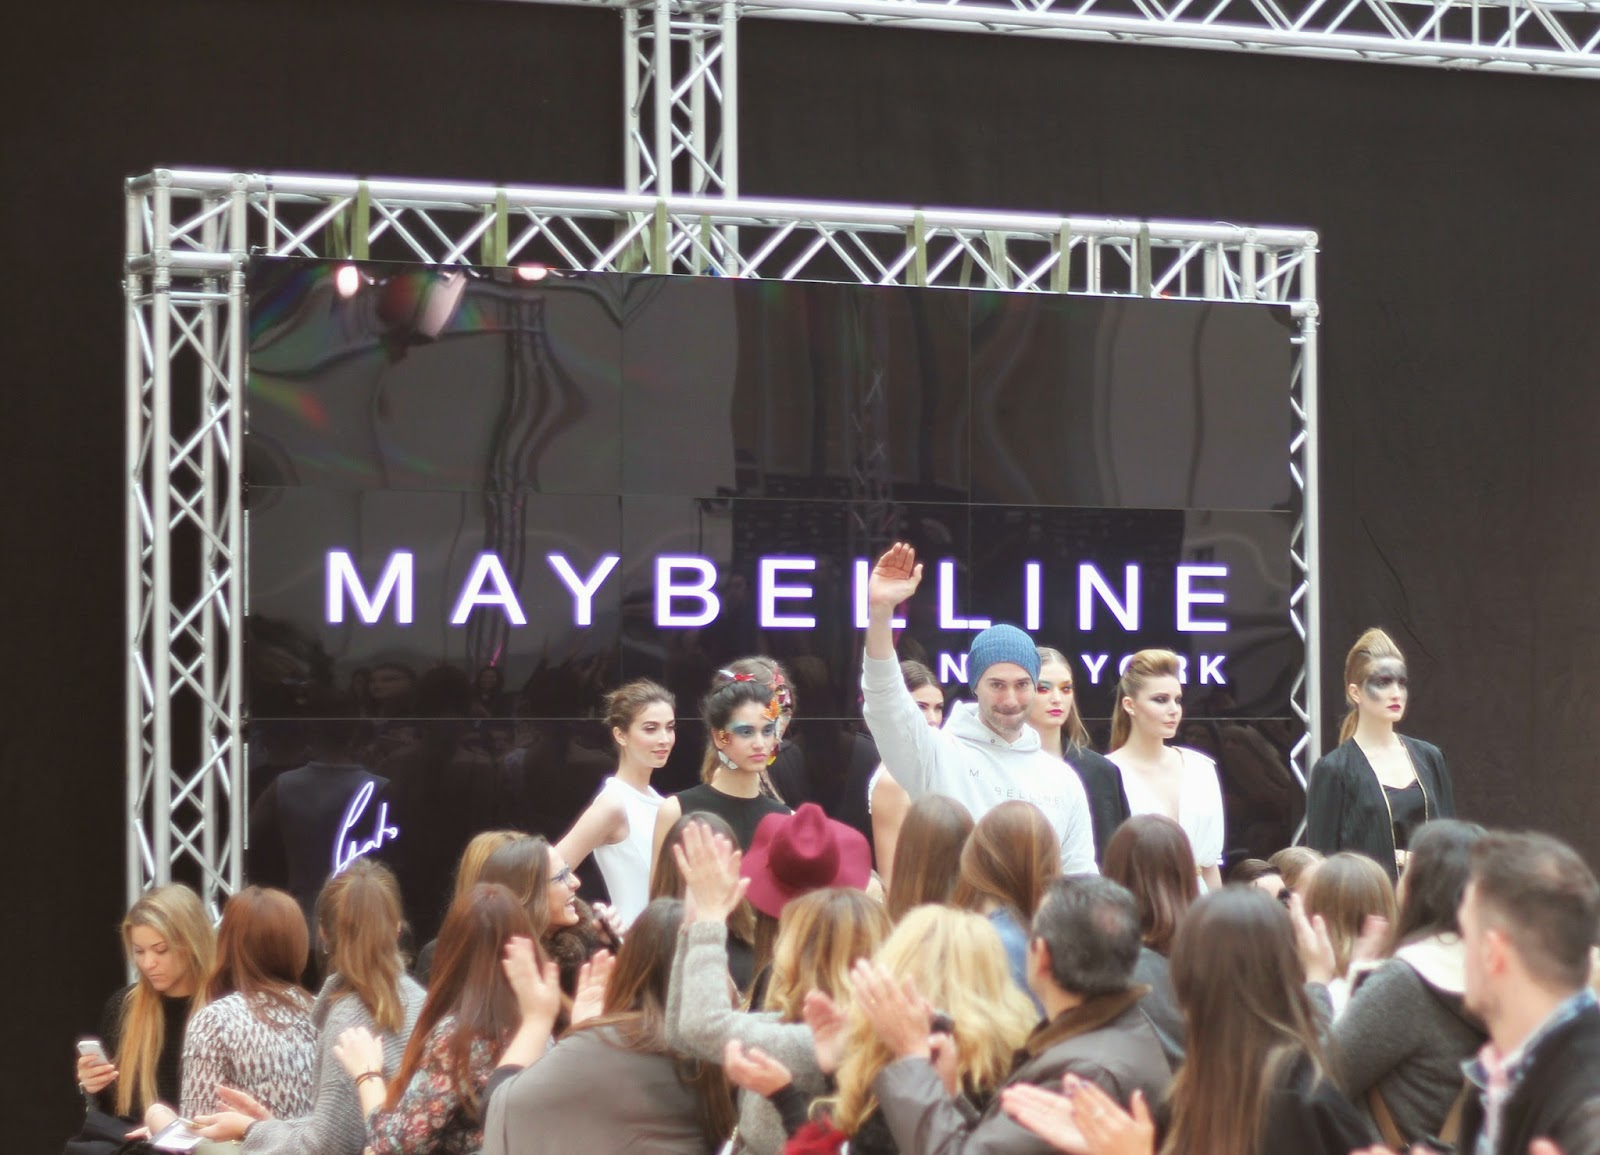 photo-mfshow_women-maybelline_ny-delapasarelaalacalle-gato